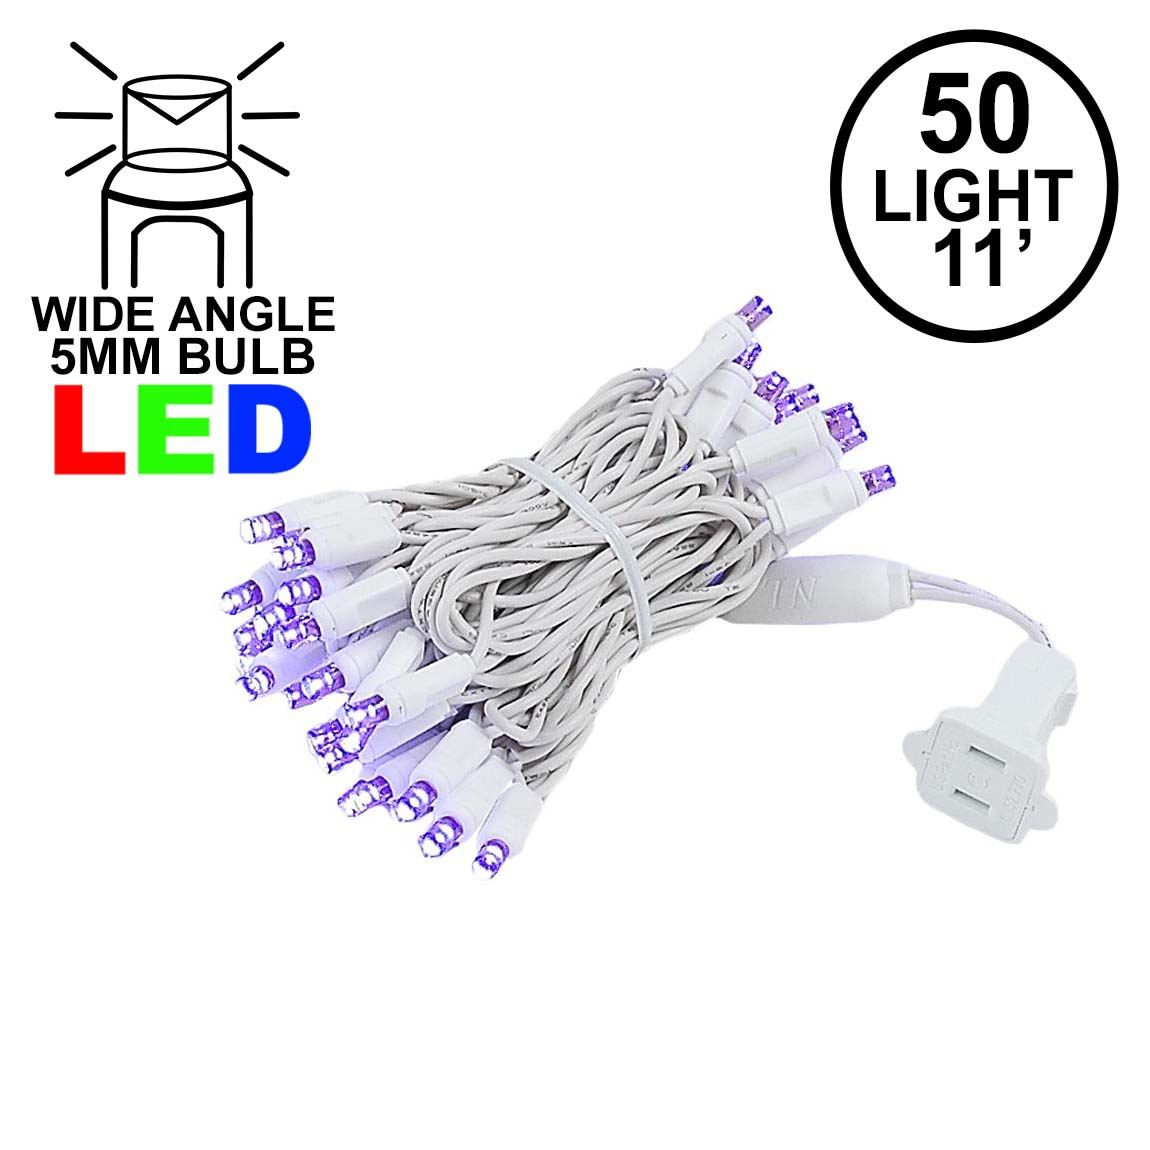 Picture of 50 LED Purple LED Christmas Lights 11' Long on White Wire